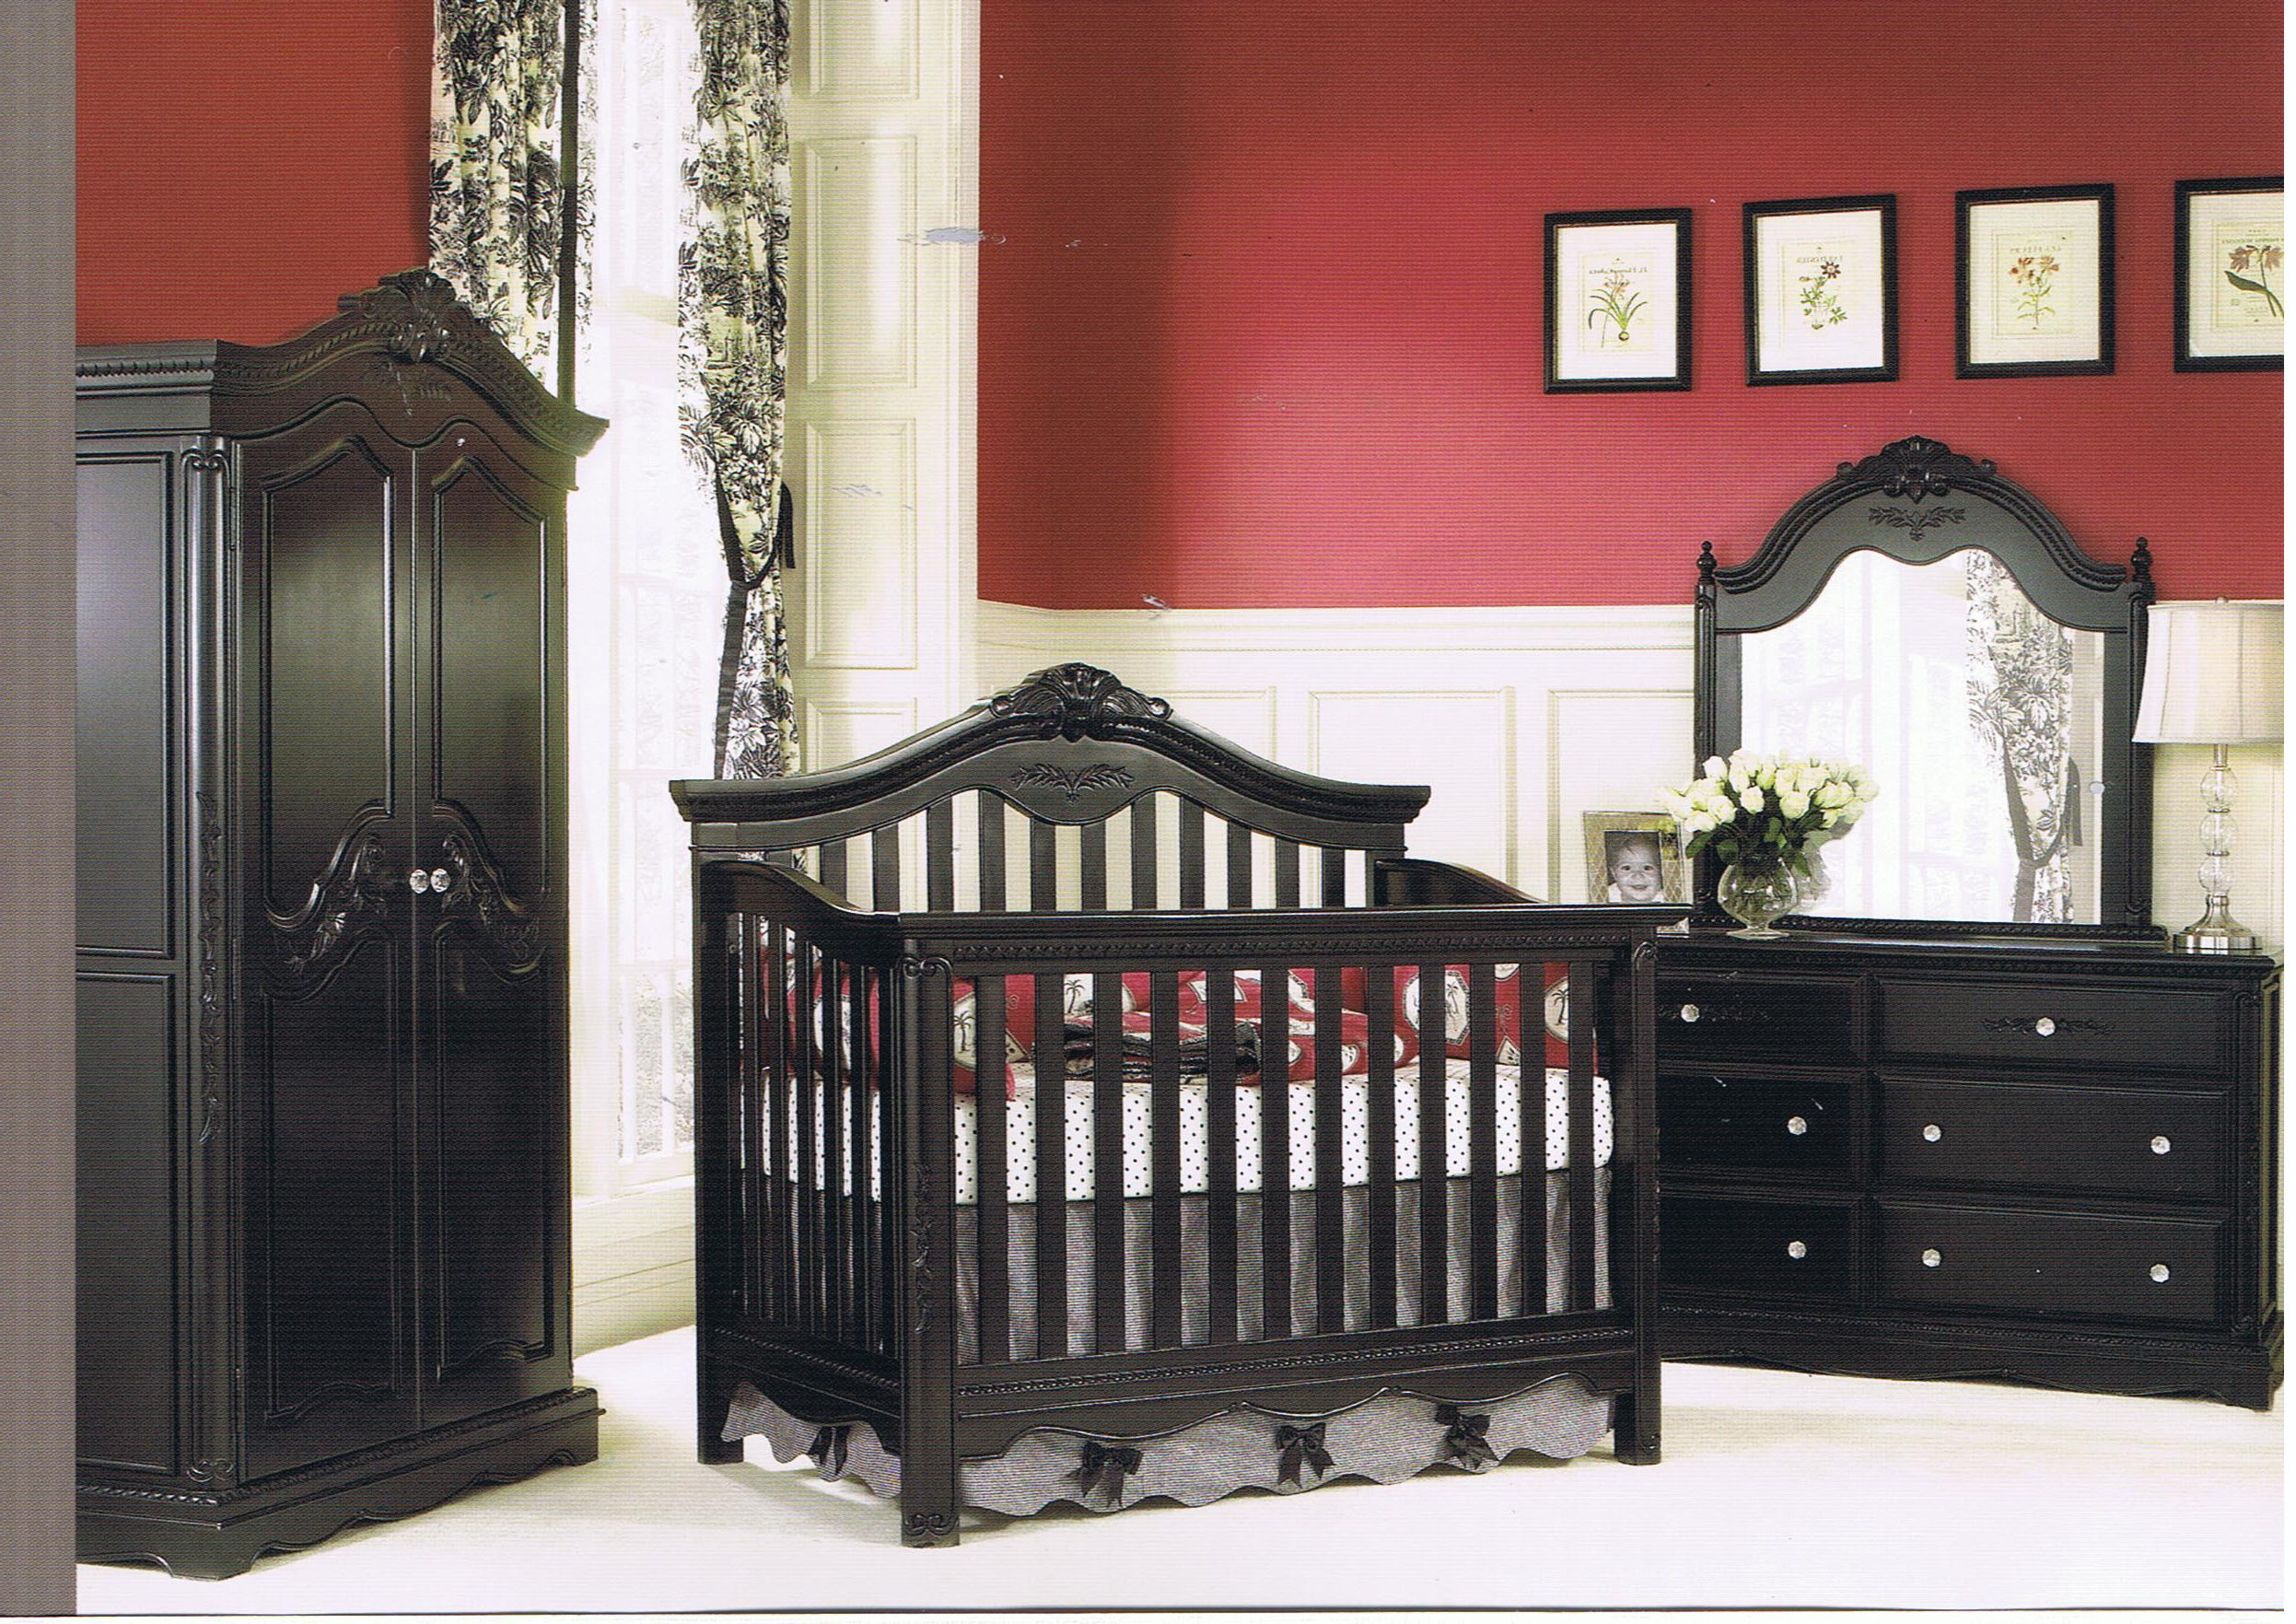 black wooden crib by munire crib on white floor plus black wooden vanity and cupboard before the red wall with white wainscoting for inspiring nursery decor ideas